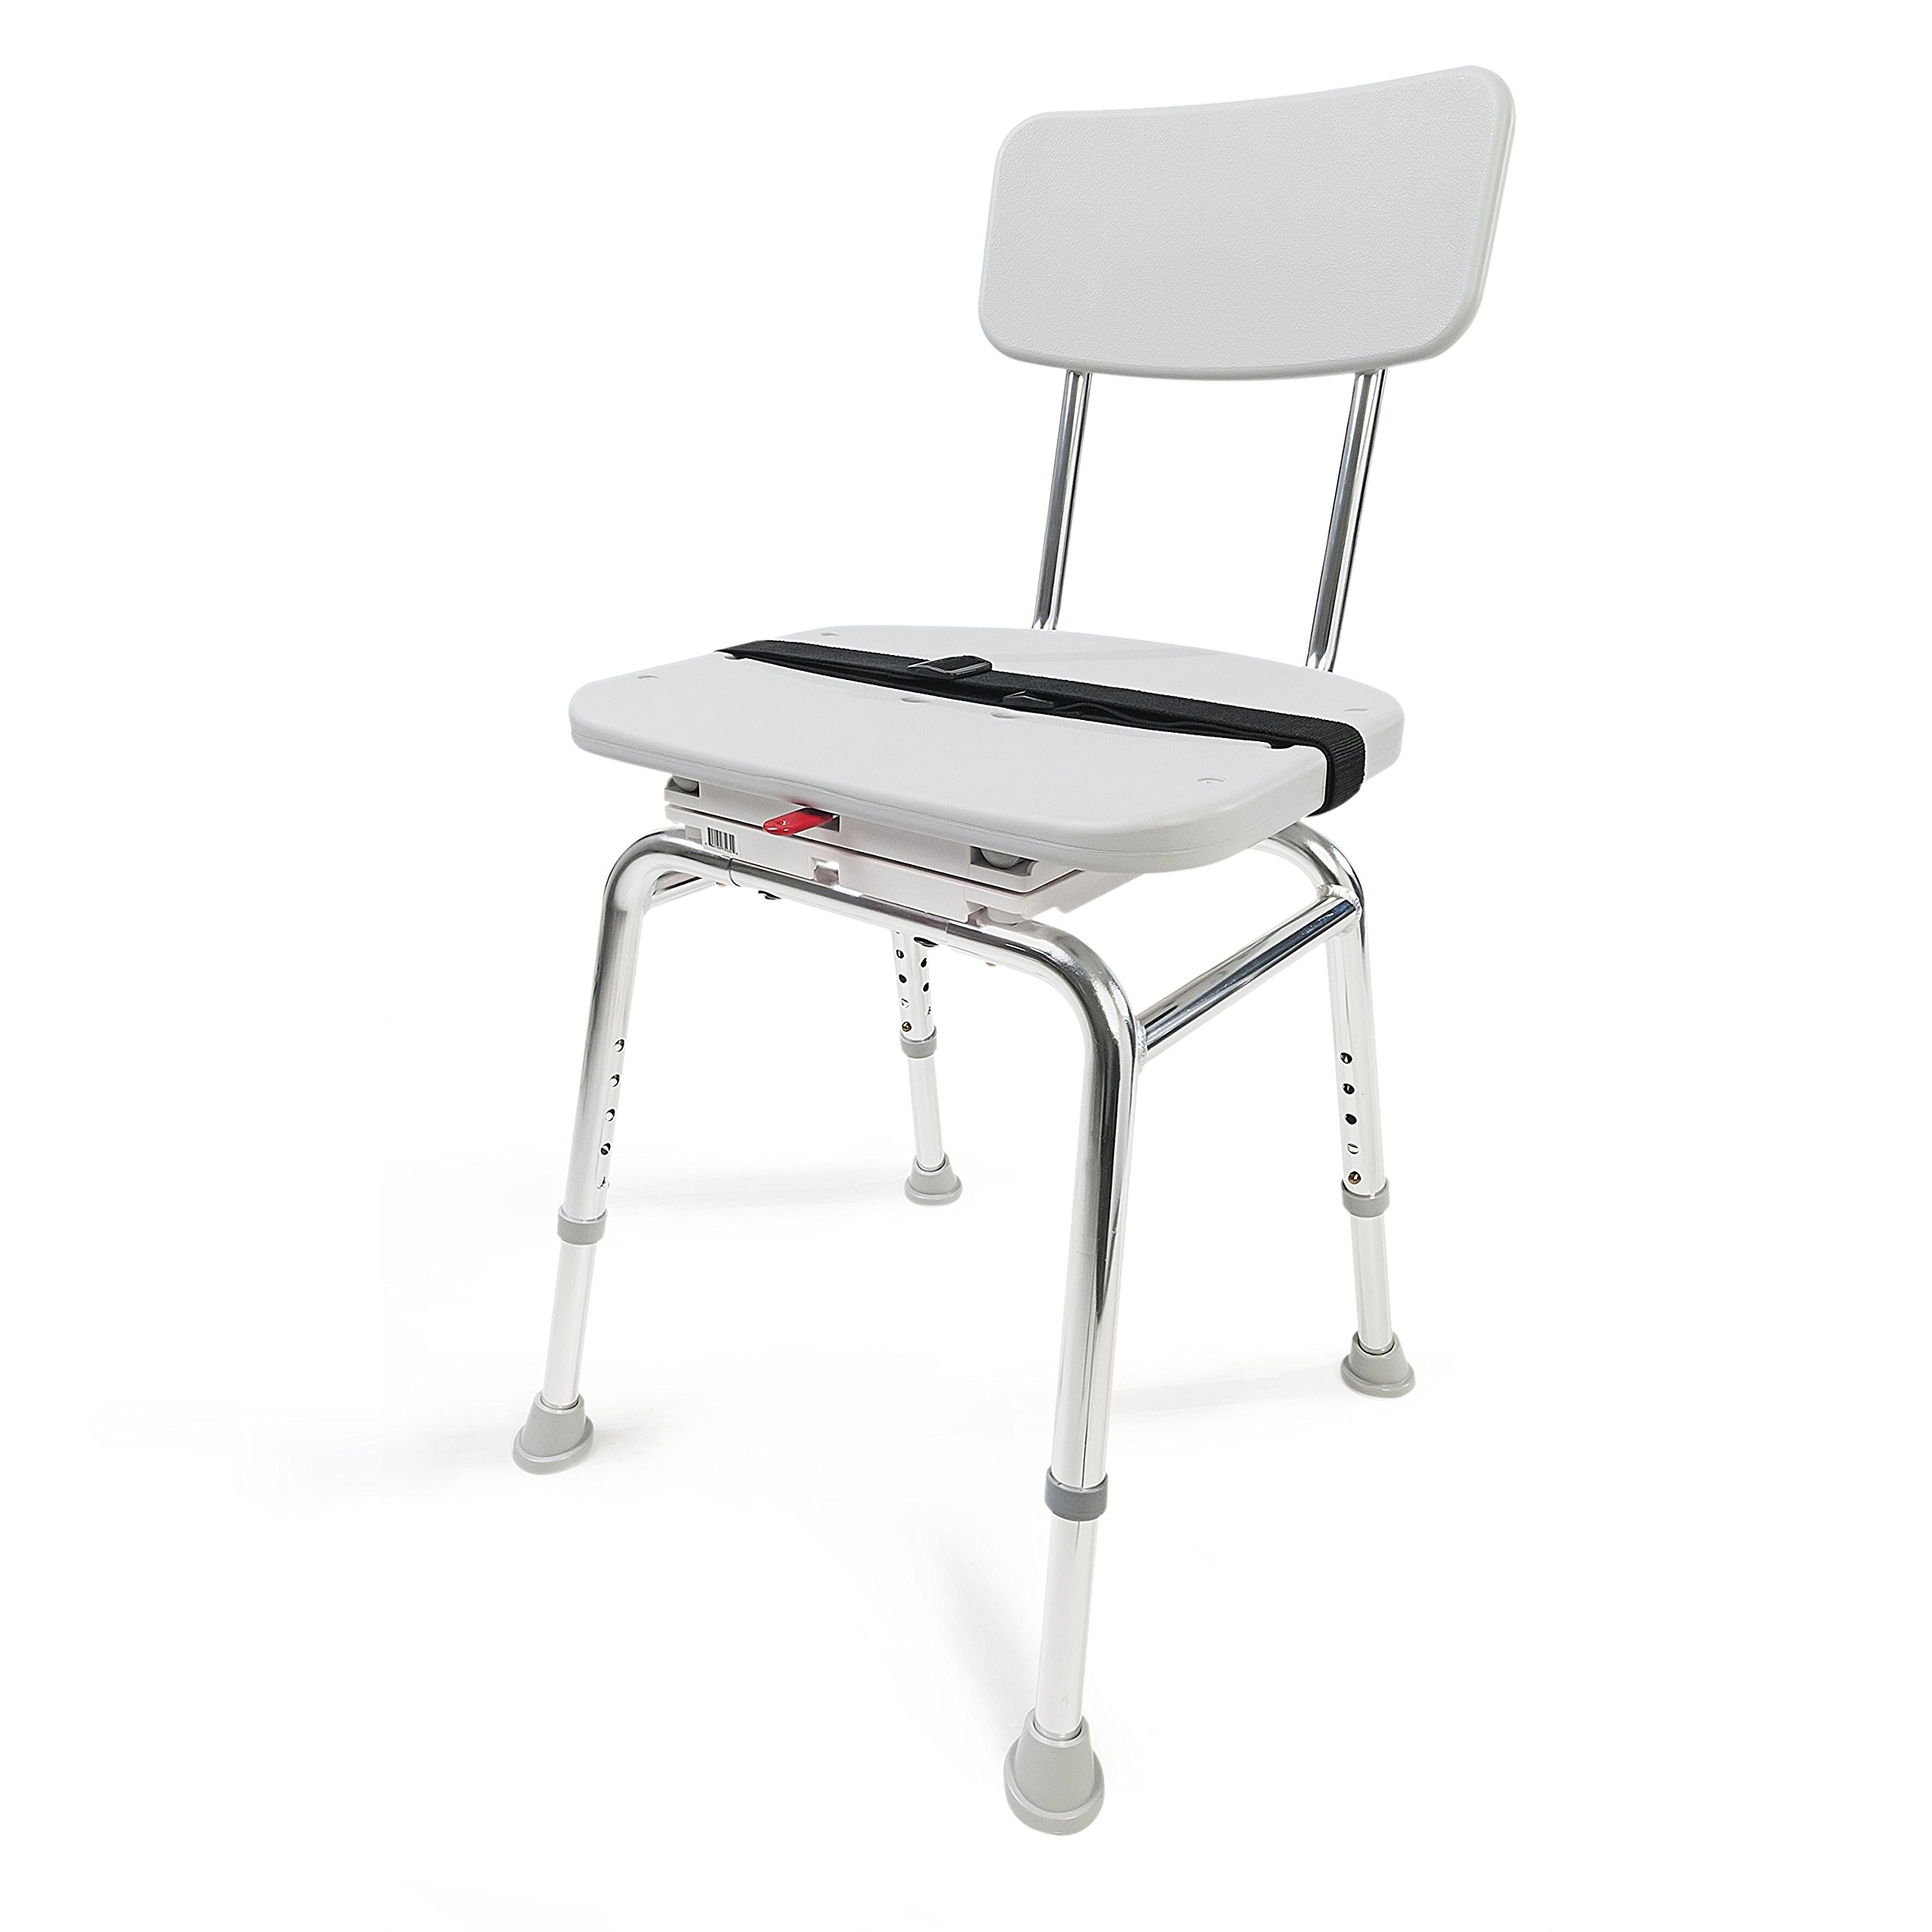 Eagle Health Supplies Adjustable Height Bath and Shower Chair with Swivel Seat, No Tool Assembly